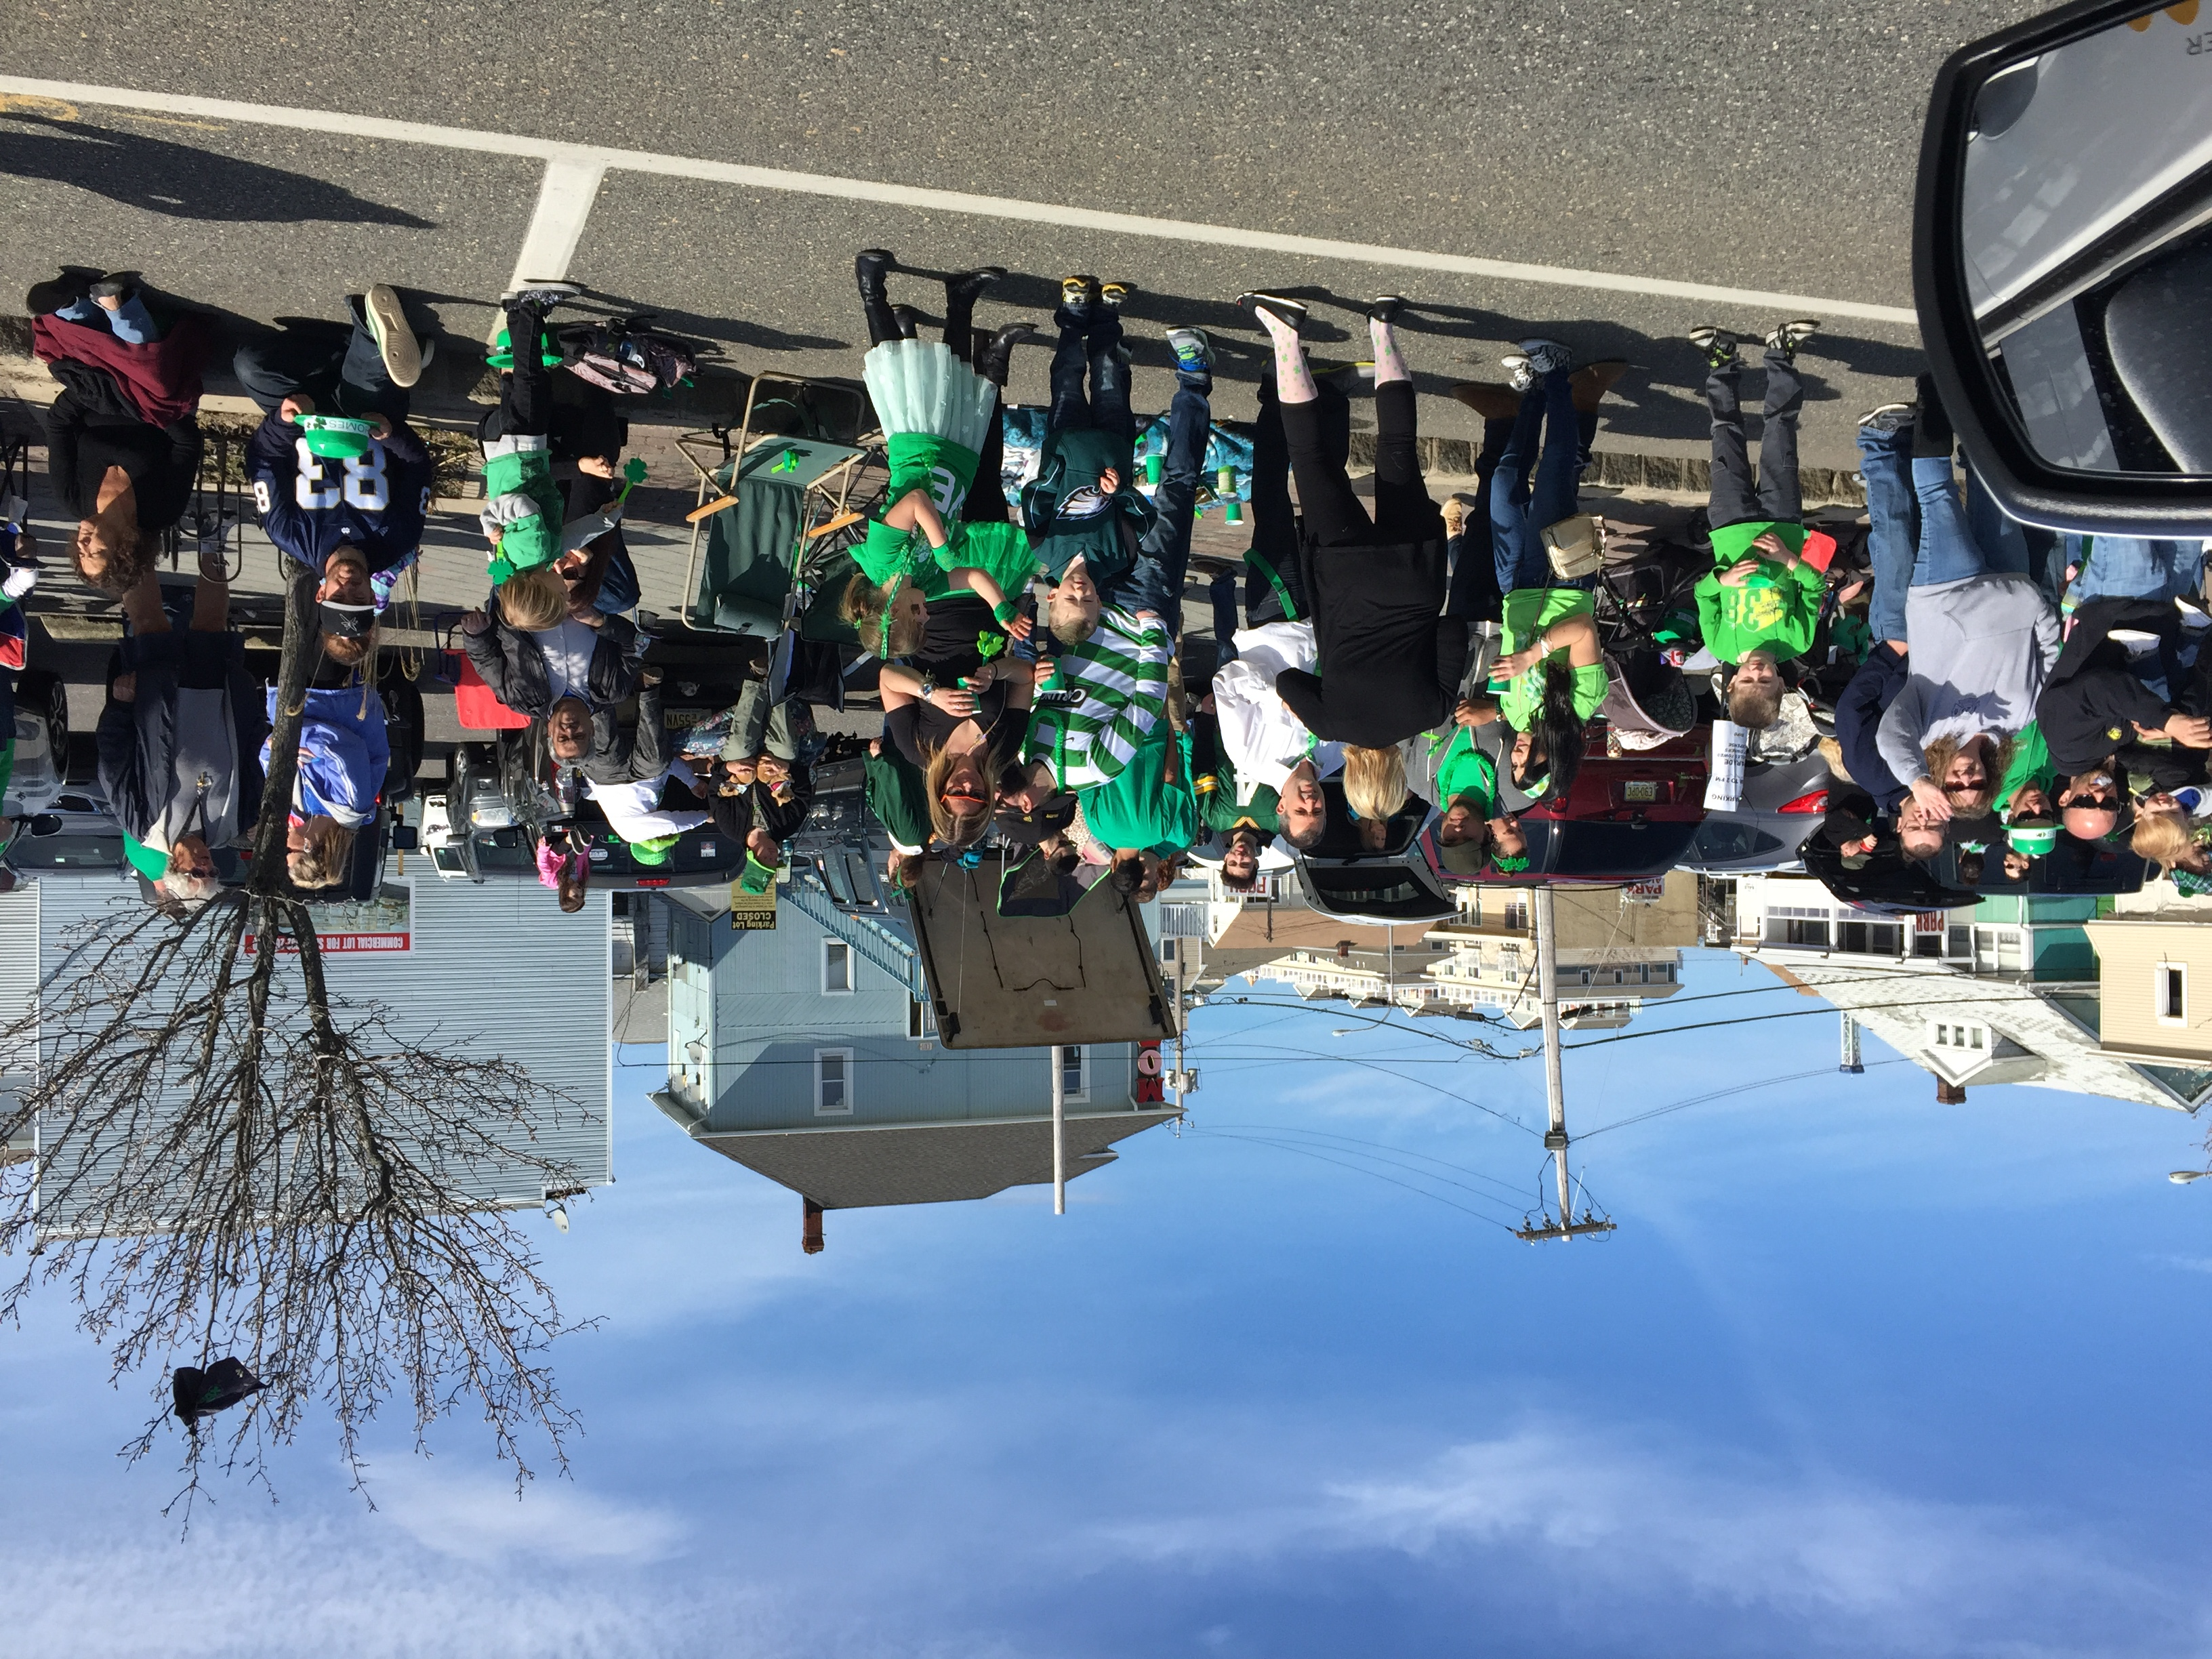 Lester Glenn Jeep >> Lester Glenn Participates in Seaside Heights St. Patrick's Day Parade! – The Lester Glenn ...